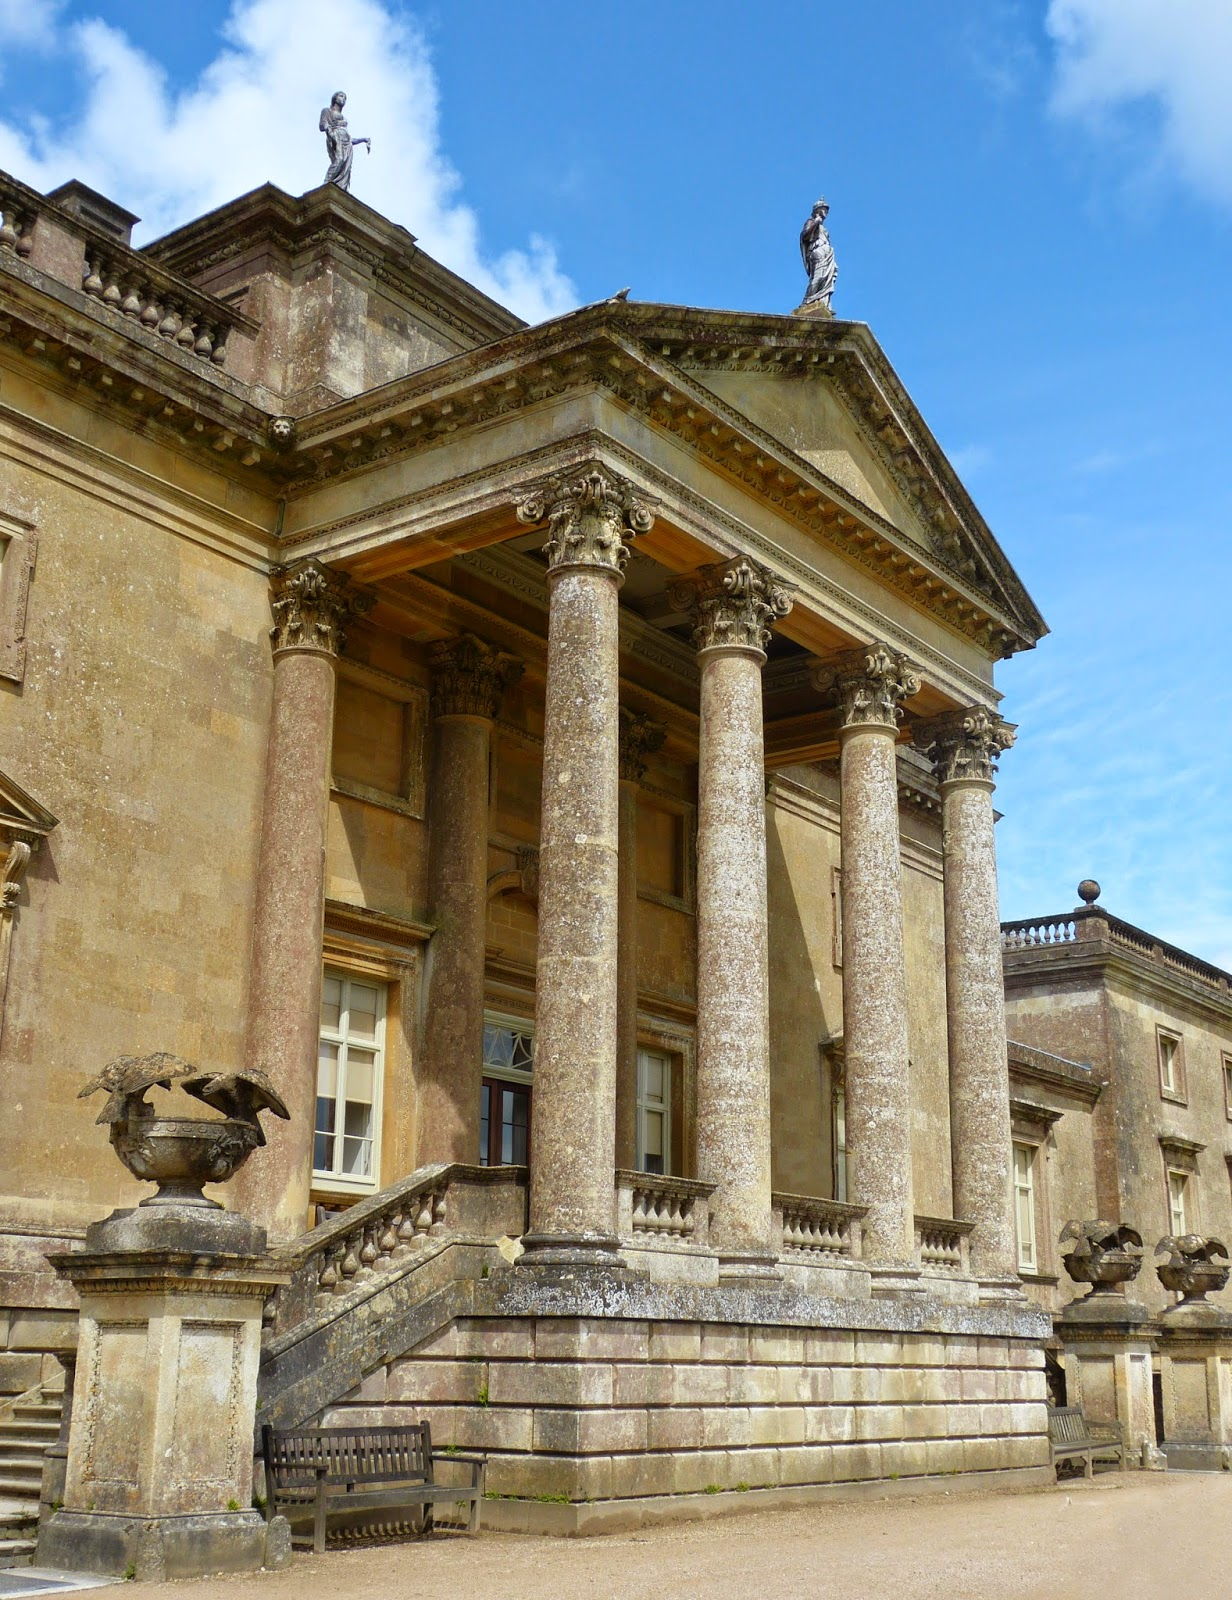 The front of the Palladian mansion at Stourhead